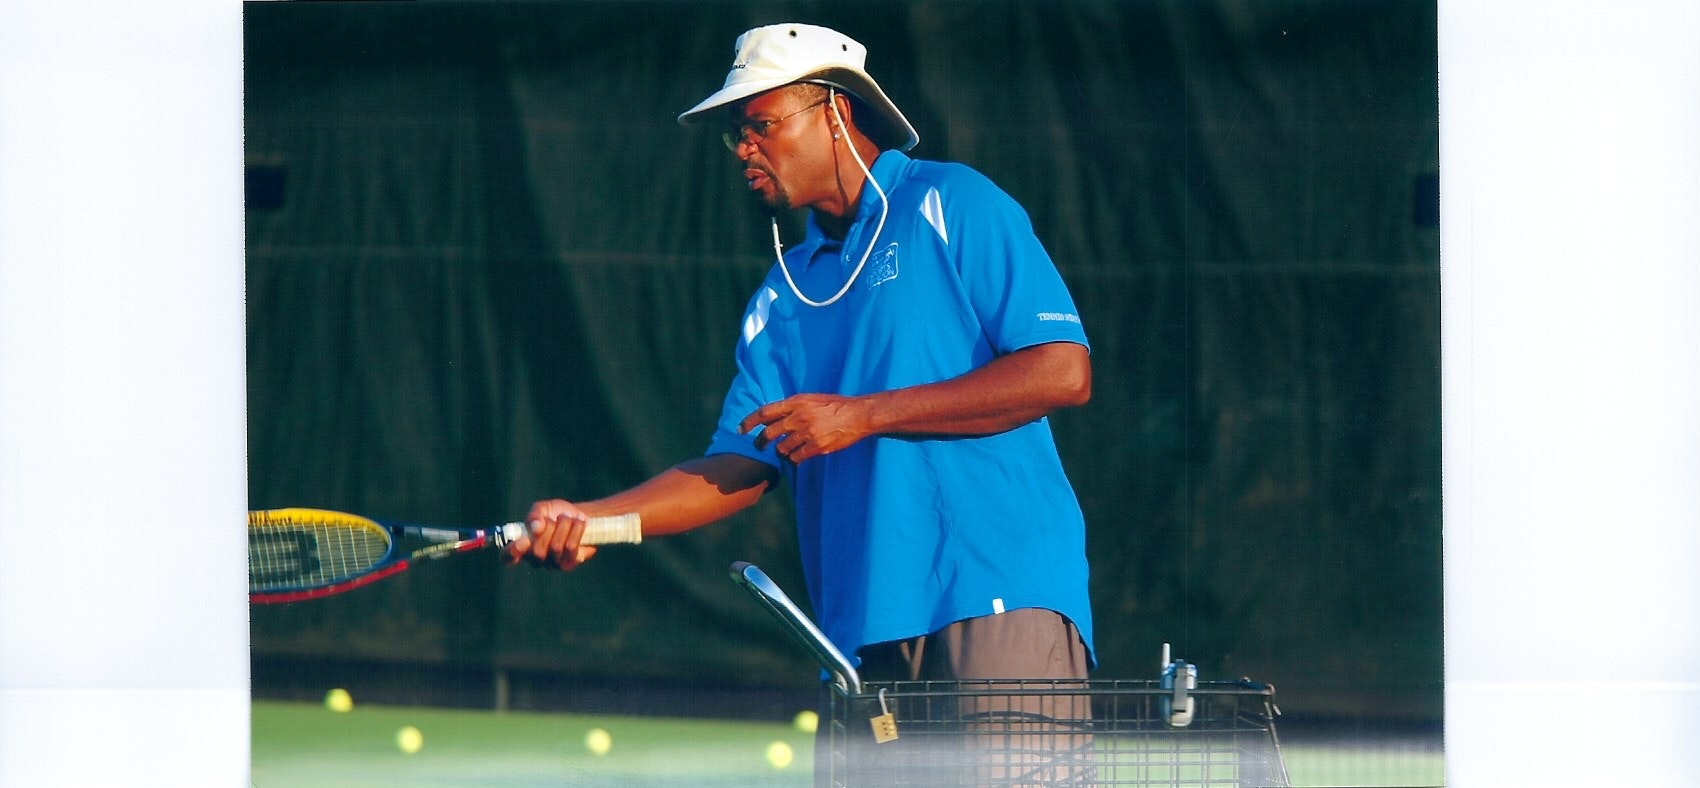 Peter T. teaches tennis lessons in Chesapeake , VA